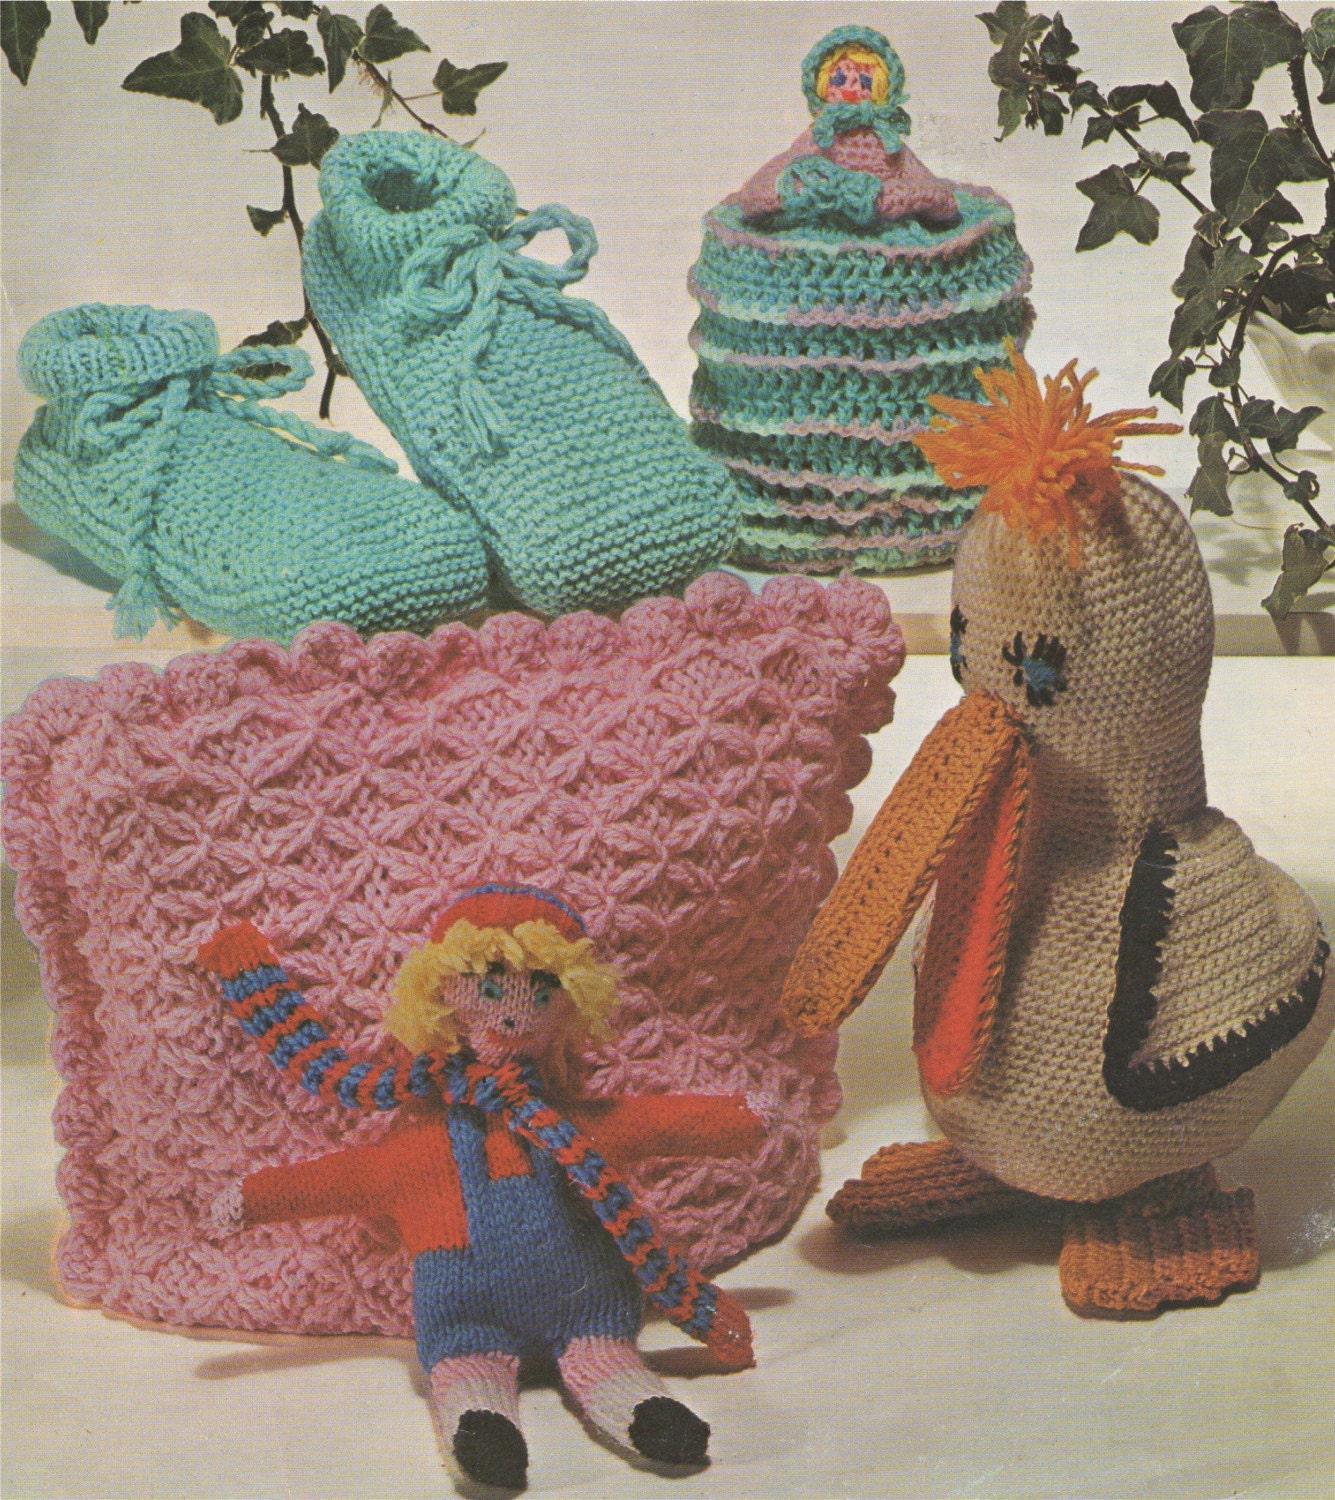 Duck Toy, Doll, Crinoline Lady Toilet Roll Cover, Tea Cosy, Slippers ...